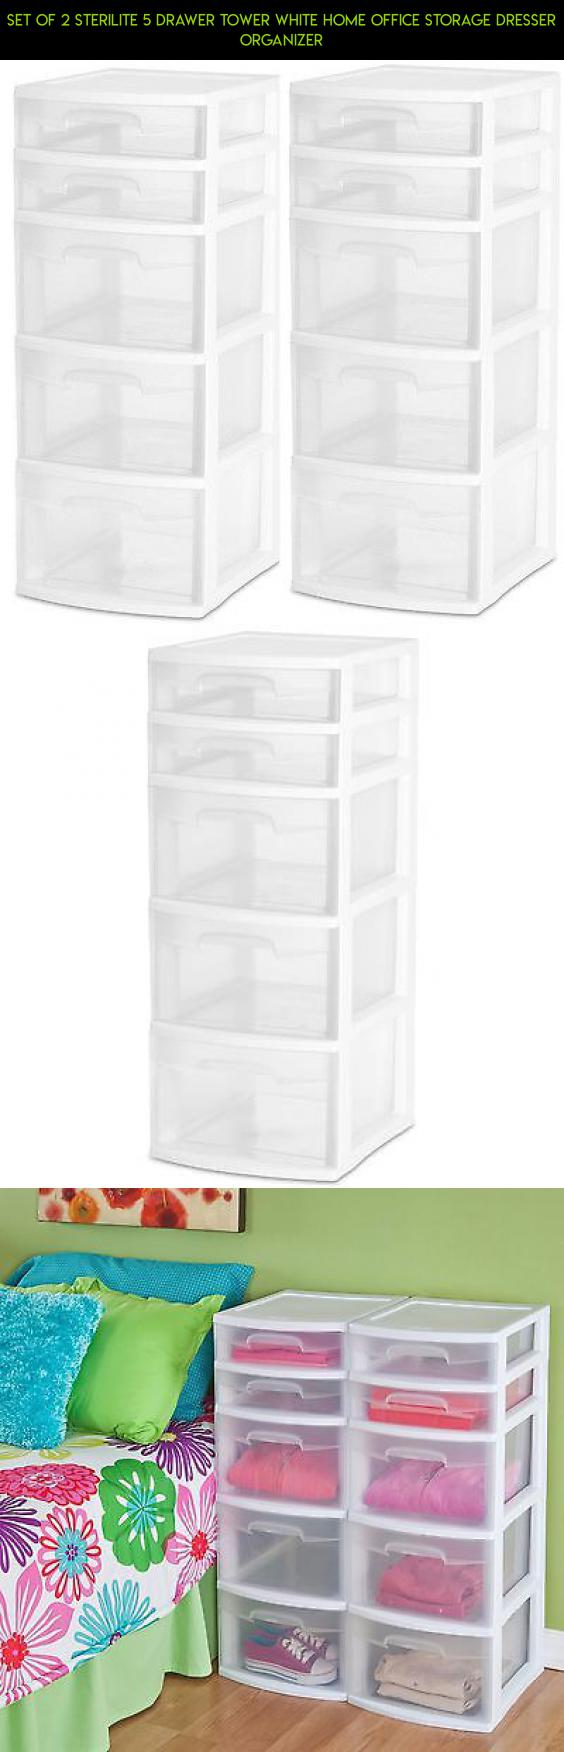 home office storage boxes. Set Of 2 Sterilite 5 Drawer Tower White Home Office Storage Dresser Organizer #gadgets # Boxes